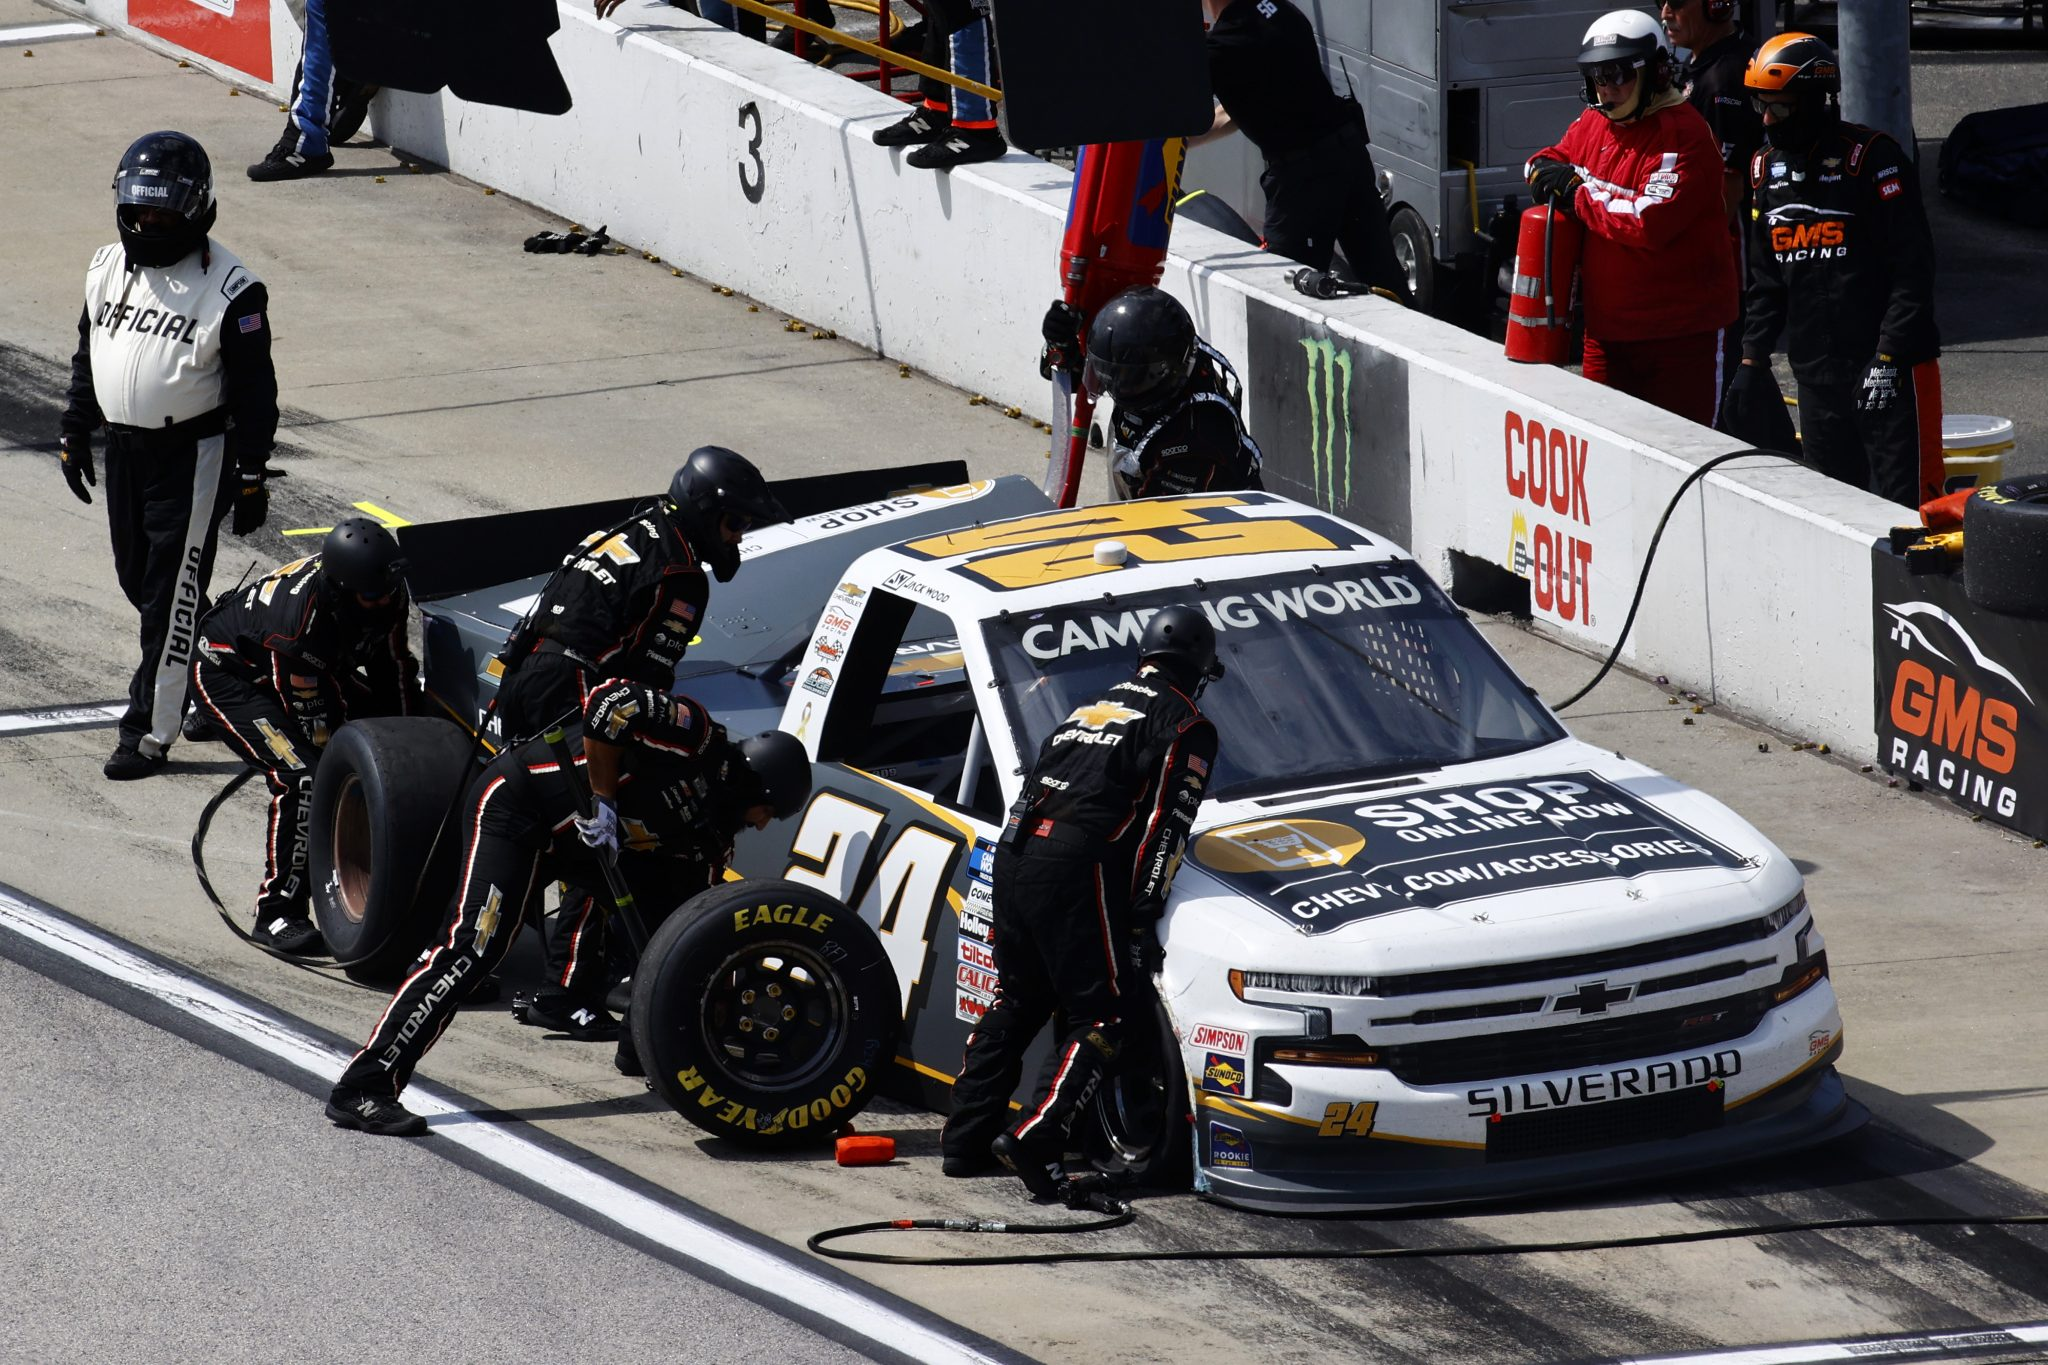 DARLINGTON, SOUTH CAROLINA - SEPTEMBER 05: Jack Wood, driver of the #24 Chevy Accessories Chevrolet, pits during the NASCAR Camping World Truck Series In It To Win It 200 at Darlington Raceway on September 05, 2021 in Darlington, South Carolina. (Photo by Jared C. Tilton/Getty Images)   Getty Images